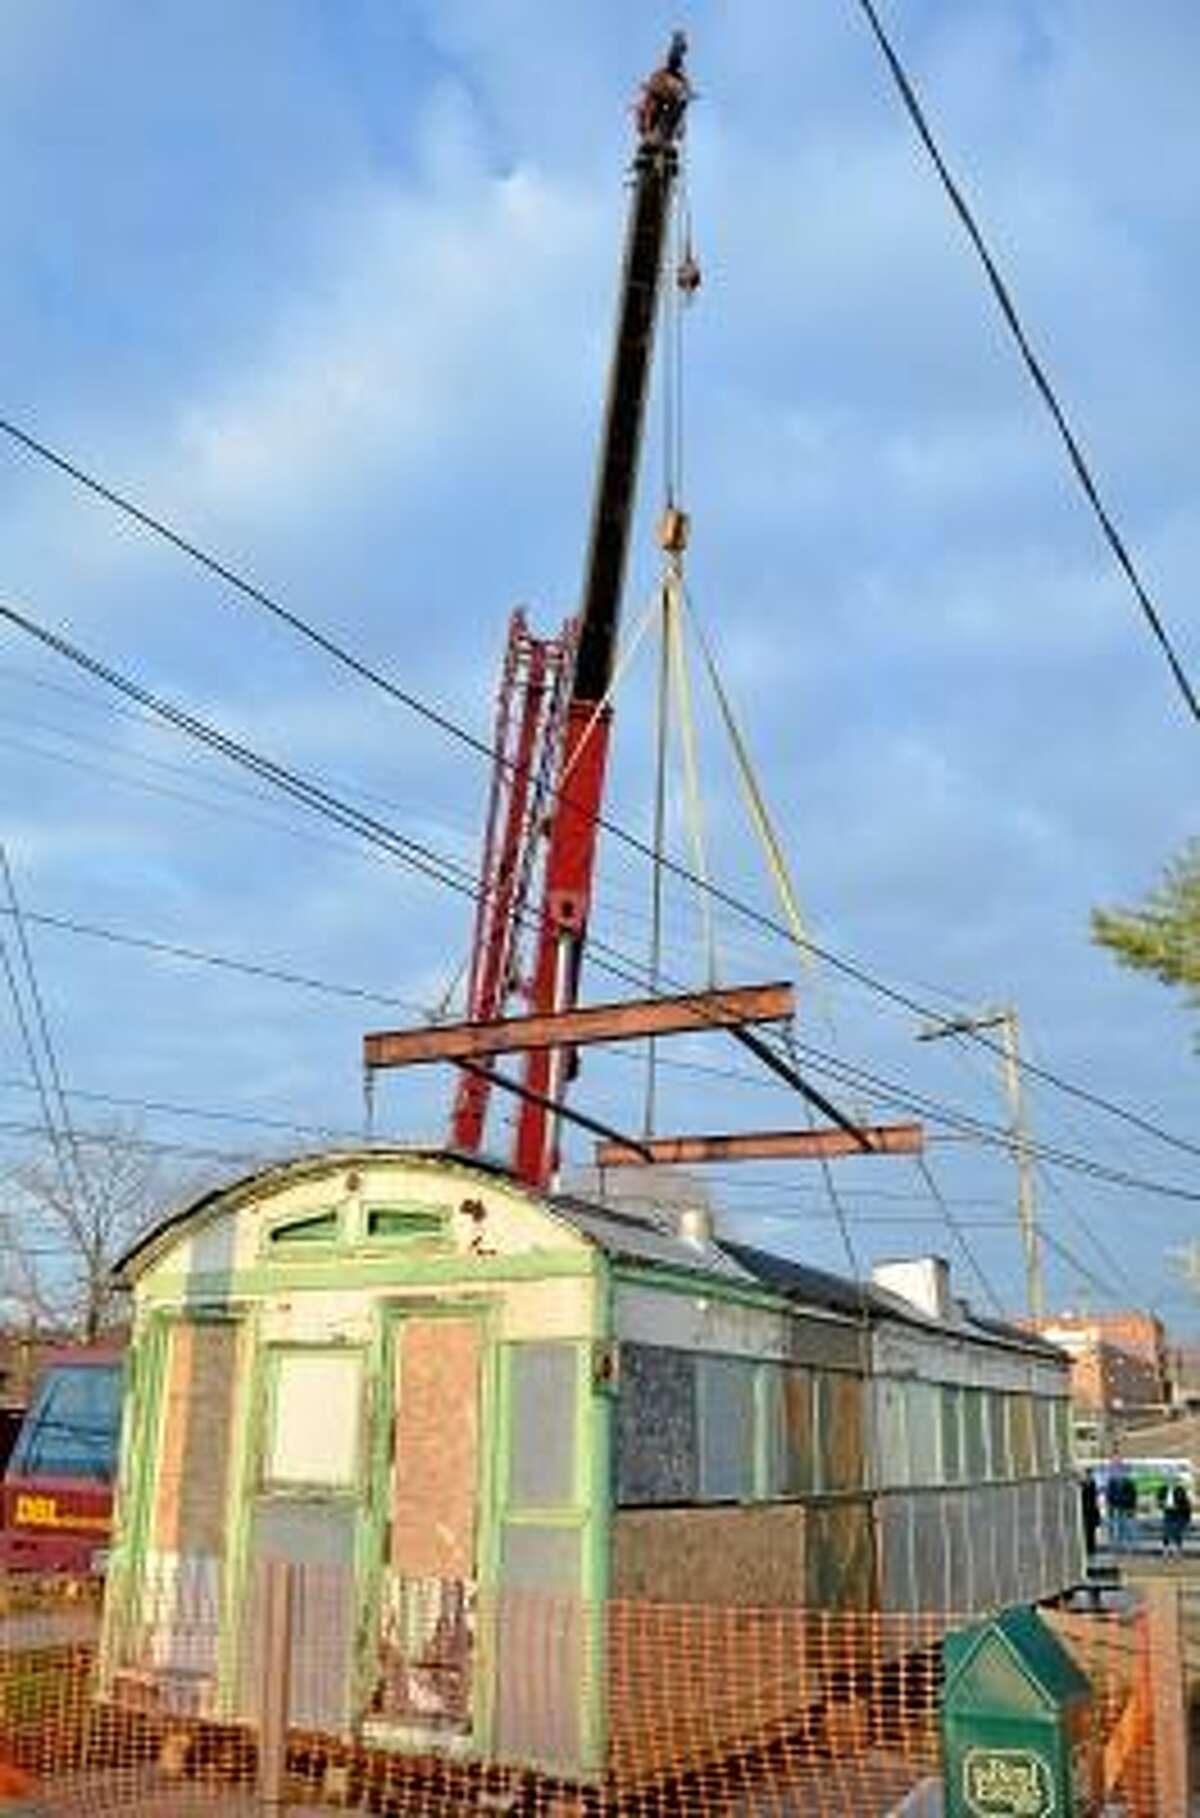 Skee's Diner was moved Sunday morning by the Torrington Historic Preservation Trust. The plan is to restore it while in storage and then move it to its new home. John Berry/Register Citizen.